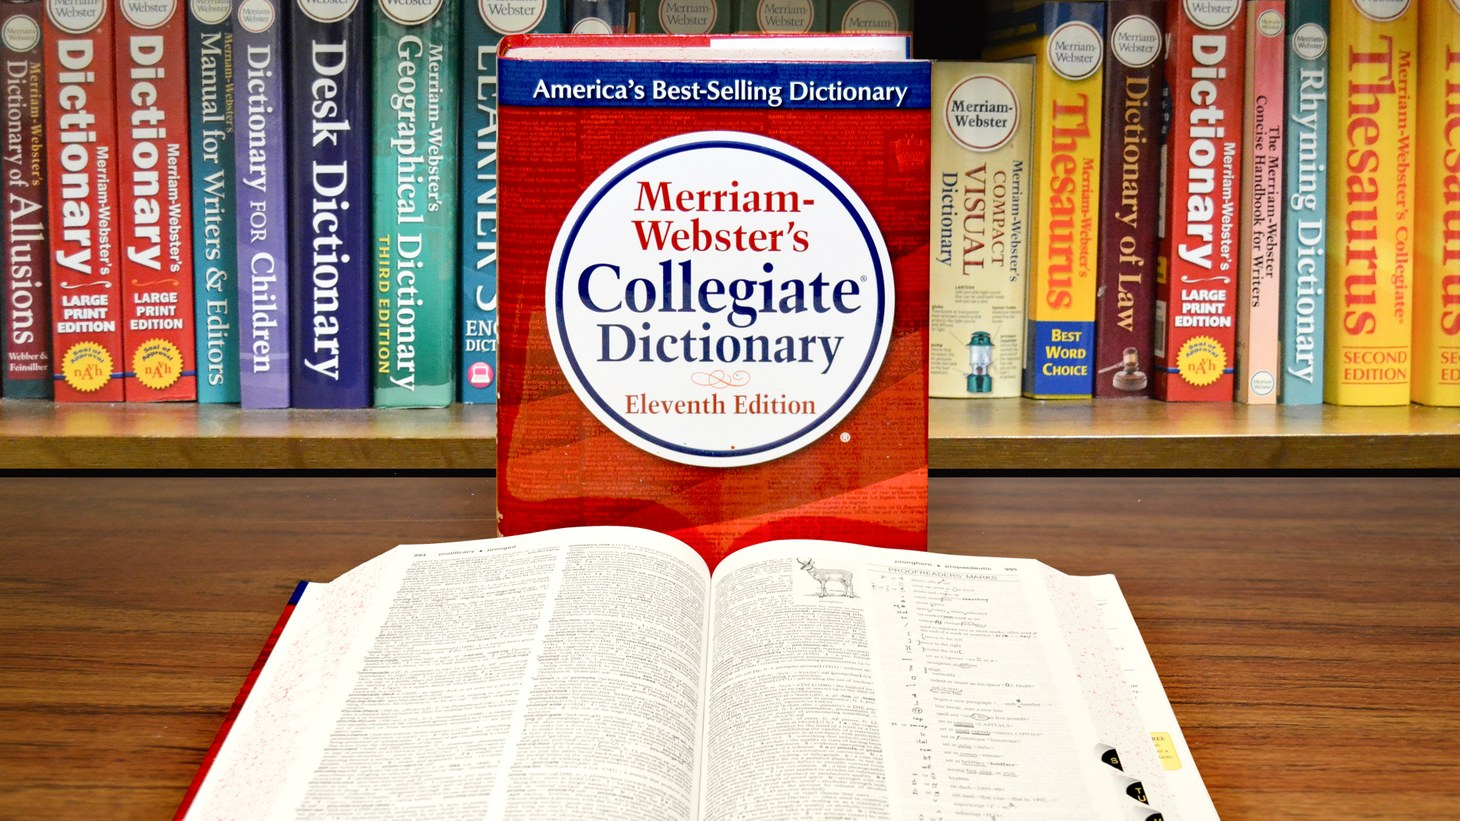 Merriam-Webster's Collegiate Dictionary, Eleventh Edition with open book and bookshelf.